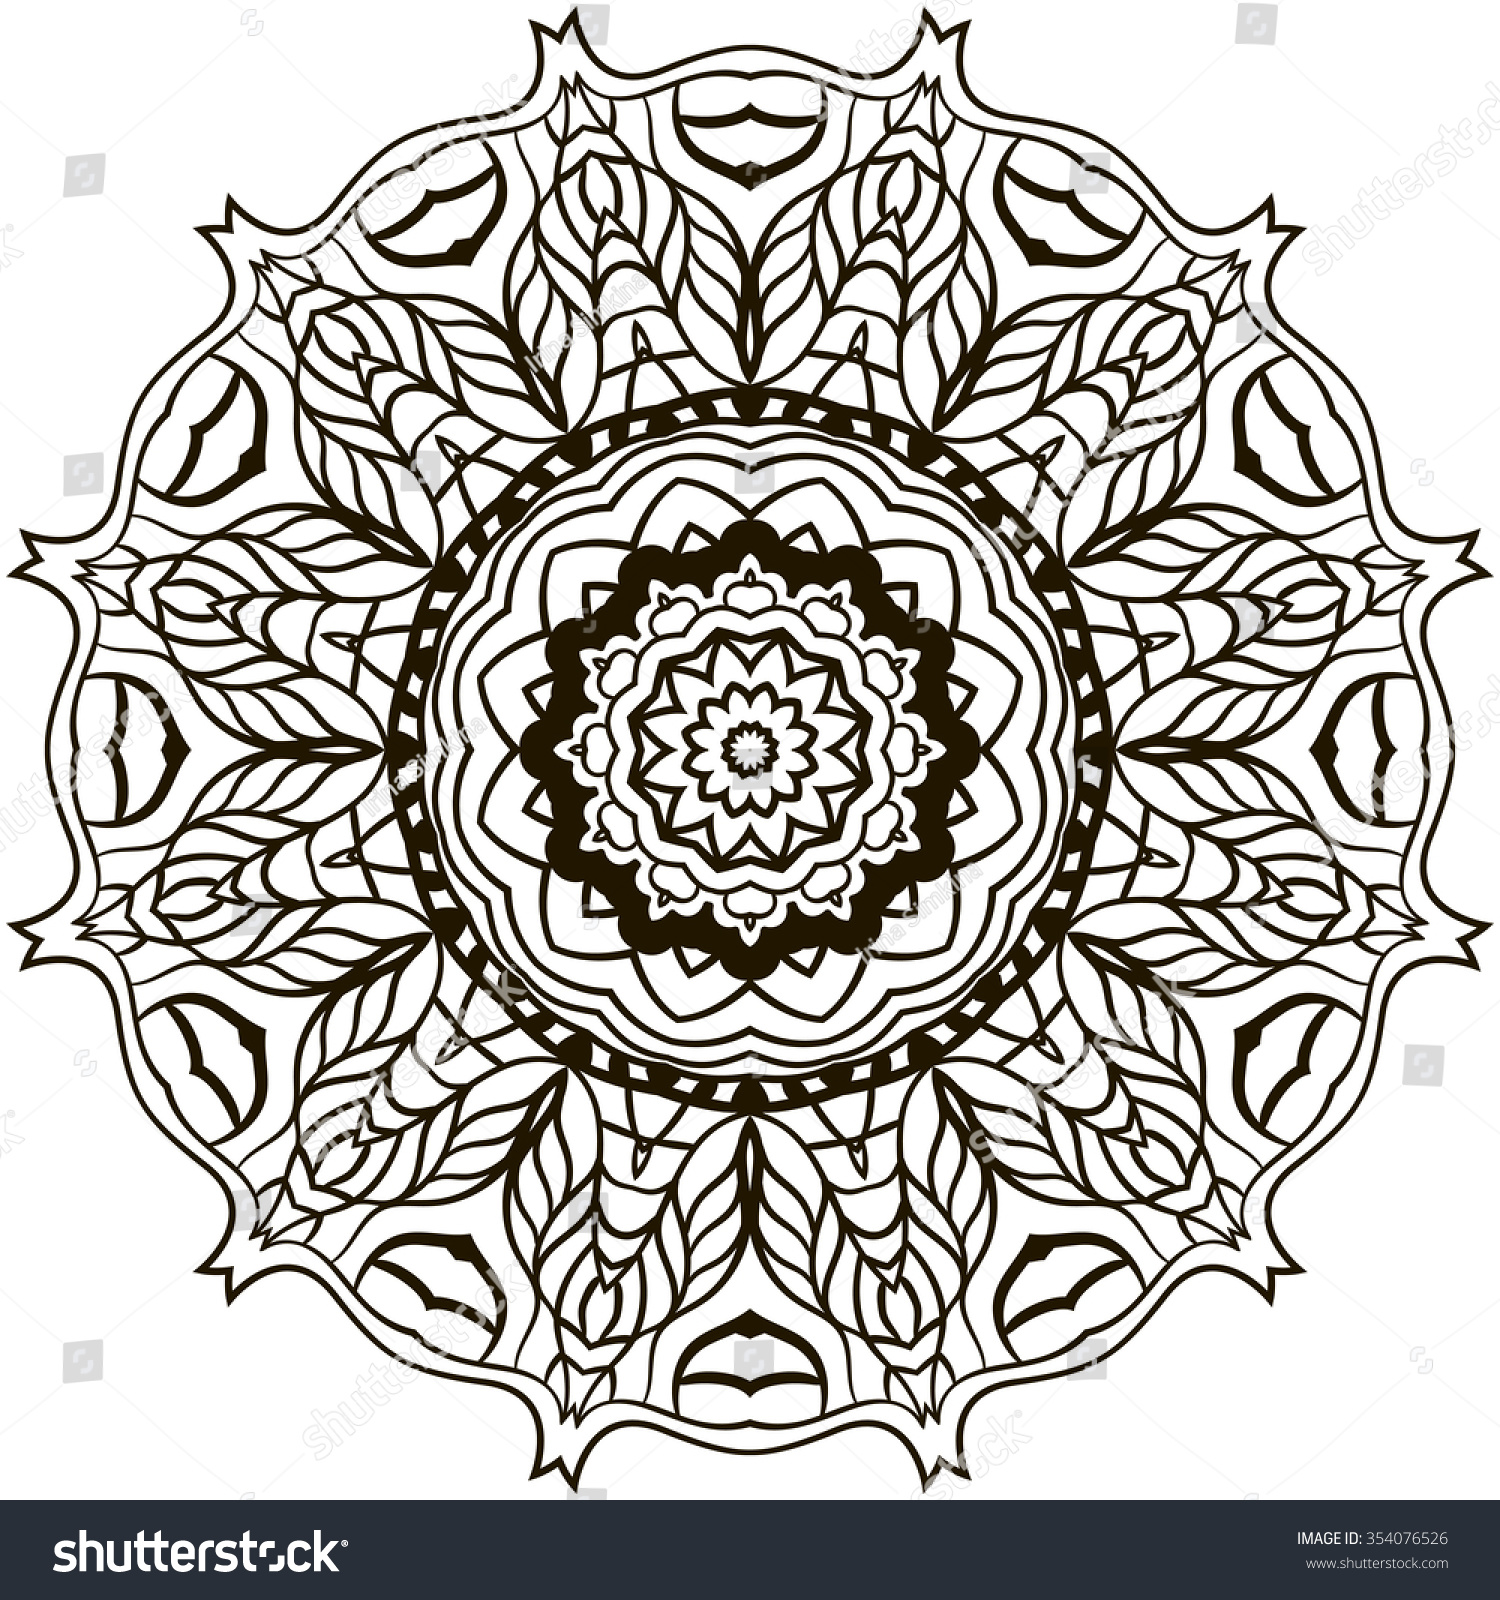 Mystical mandala coloring pages - Adult Mystical Mandala Coloring Pages Mystic Mandalas I Can Do Thatmystical Extra Medium Size